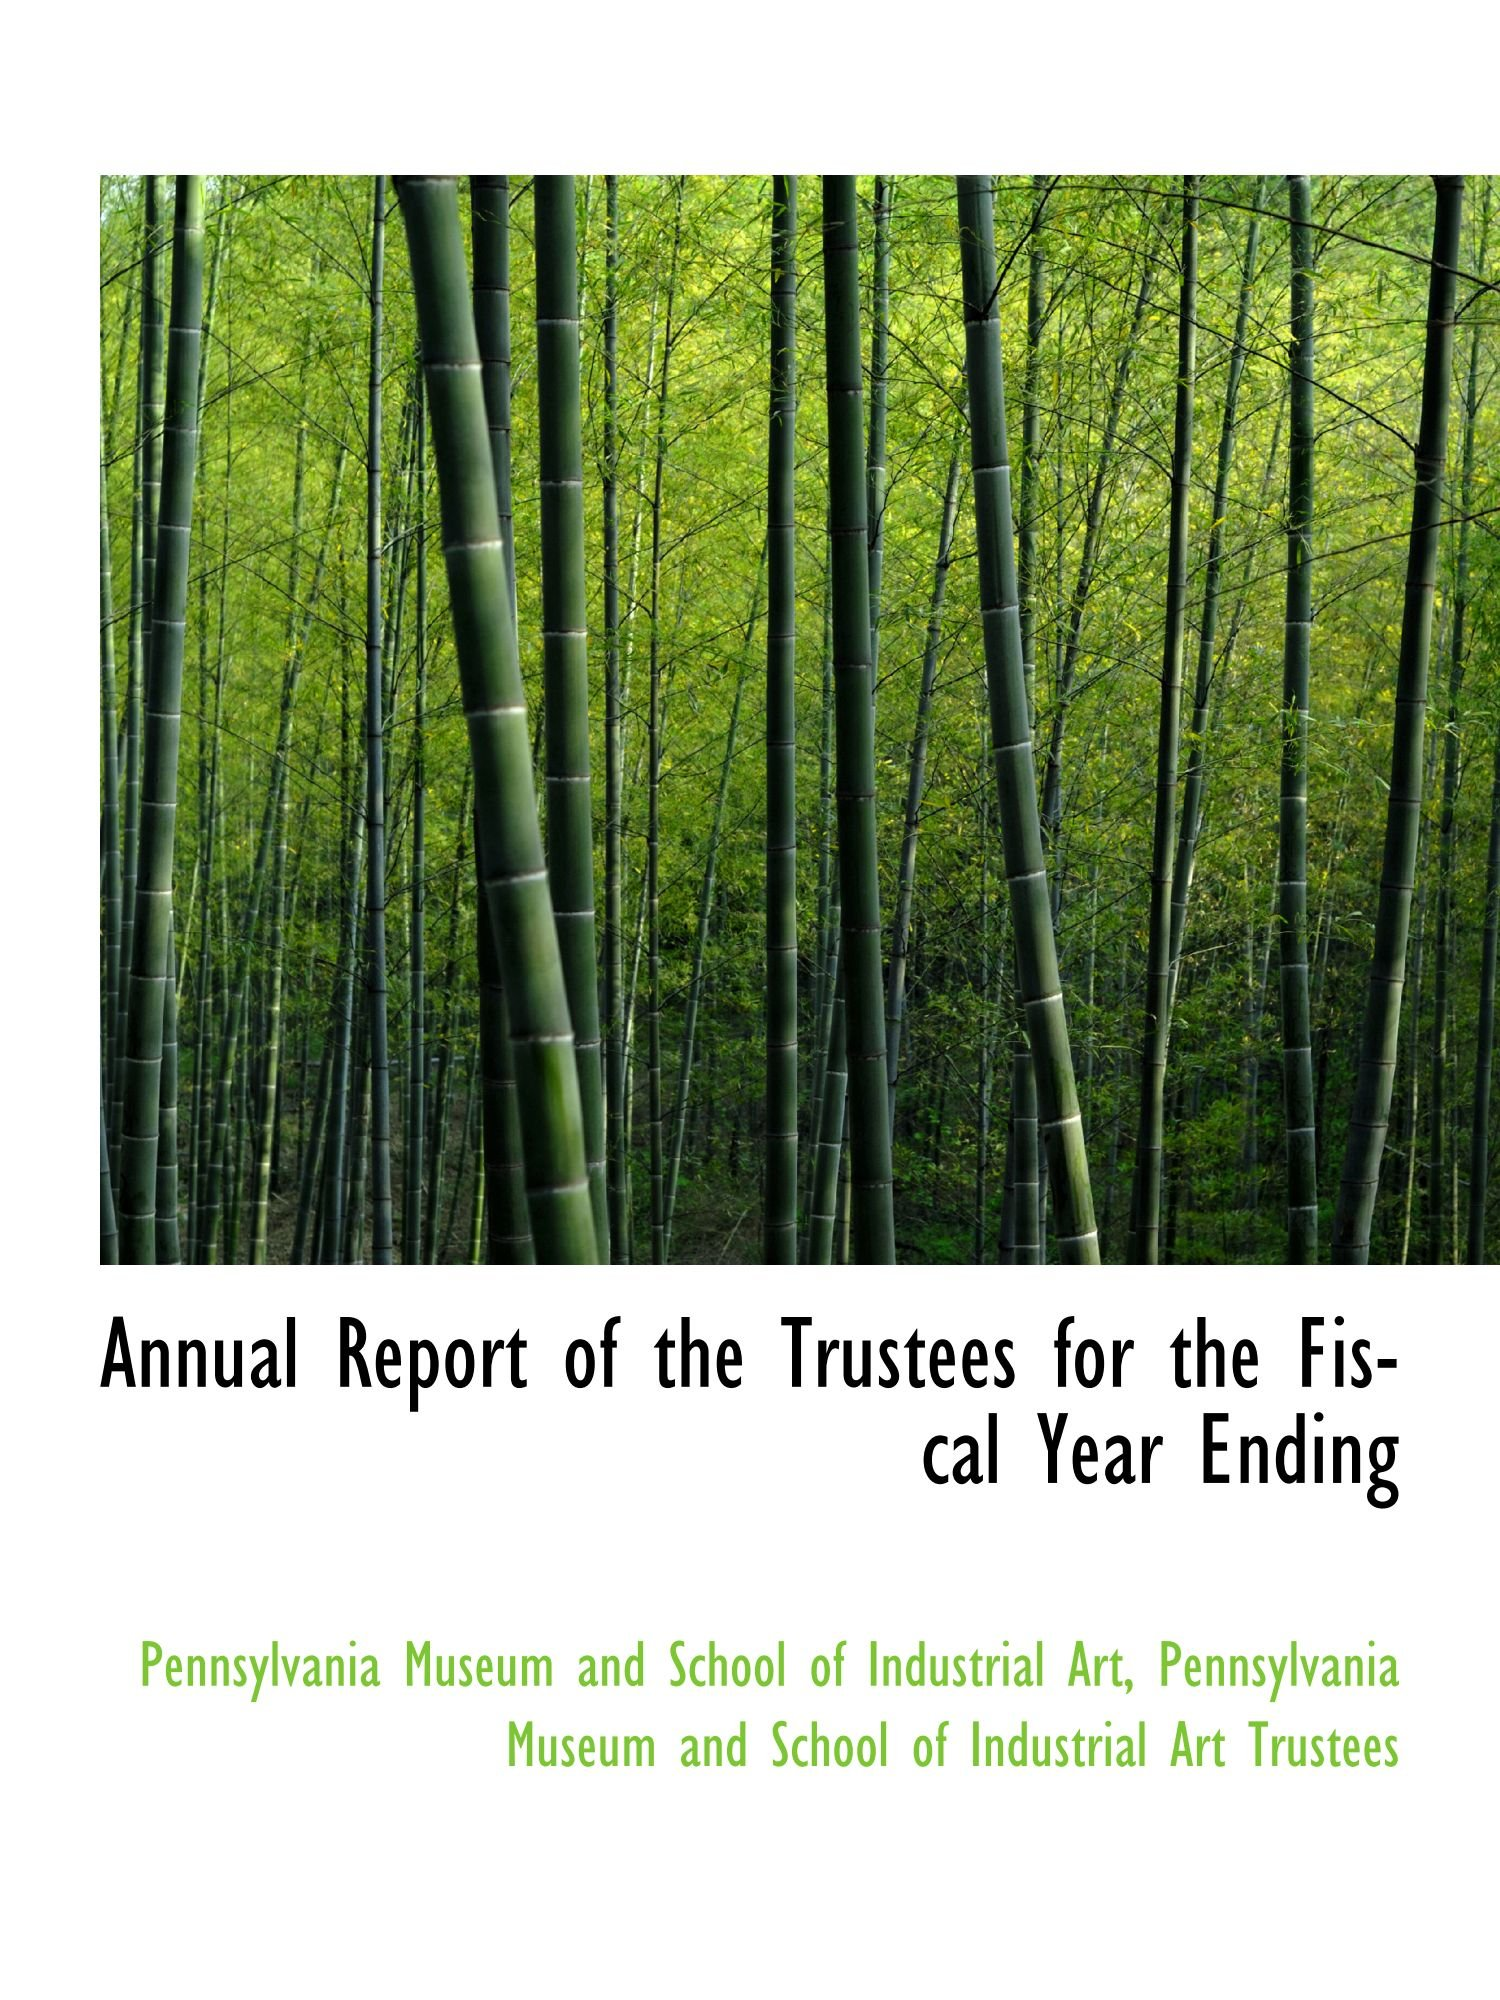 Download Annual Report of the Trustees for the Fiscal Year Ending pdf